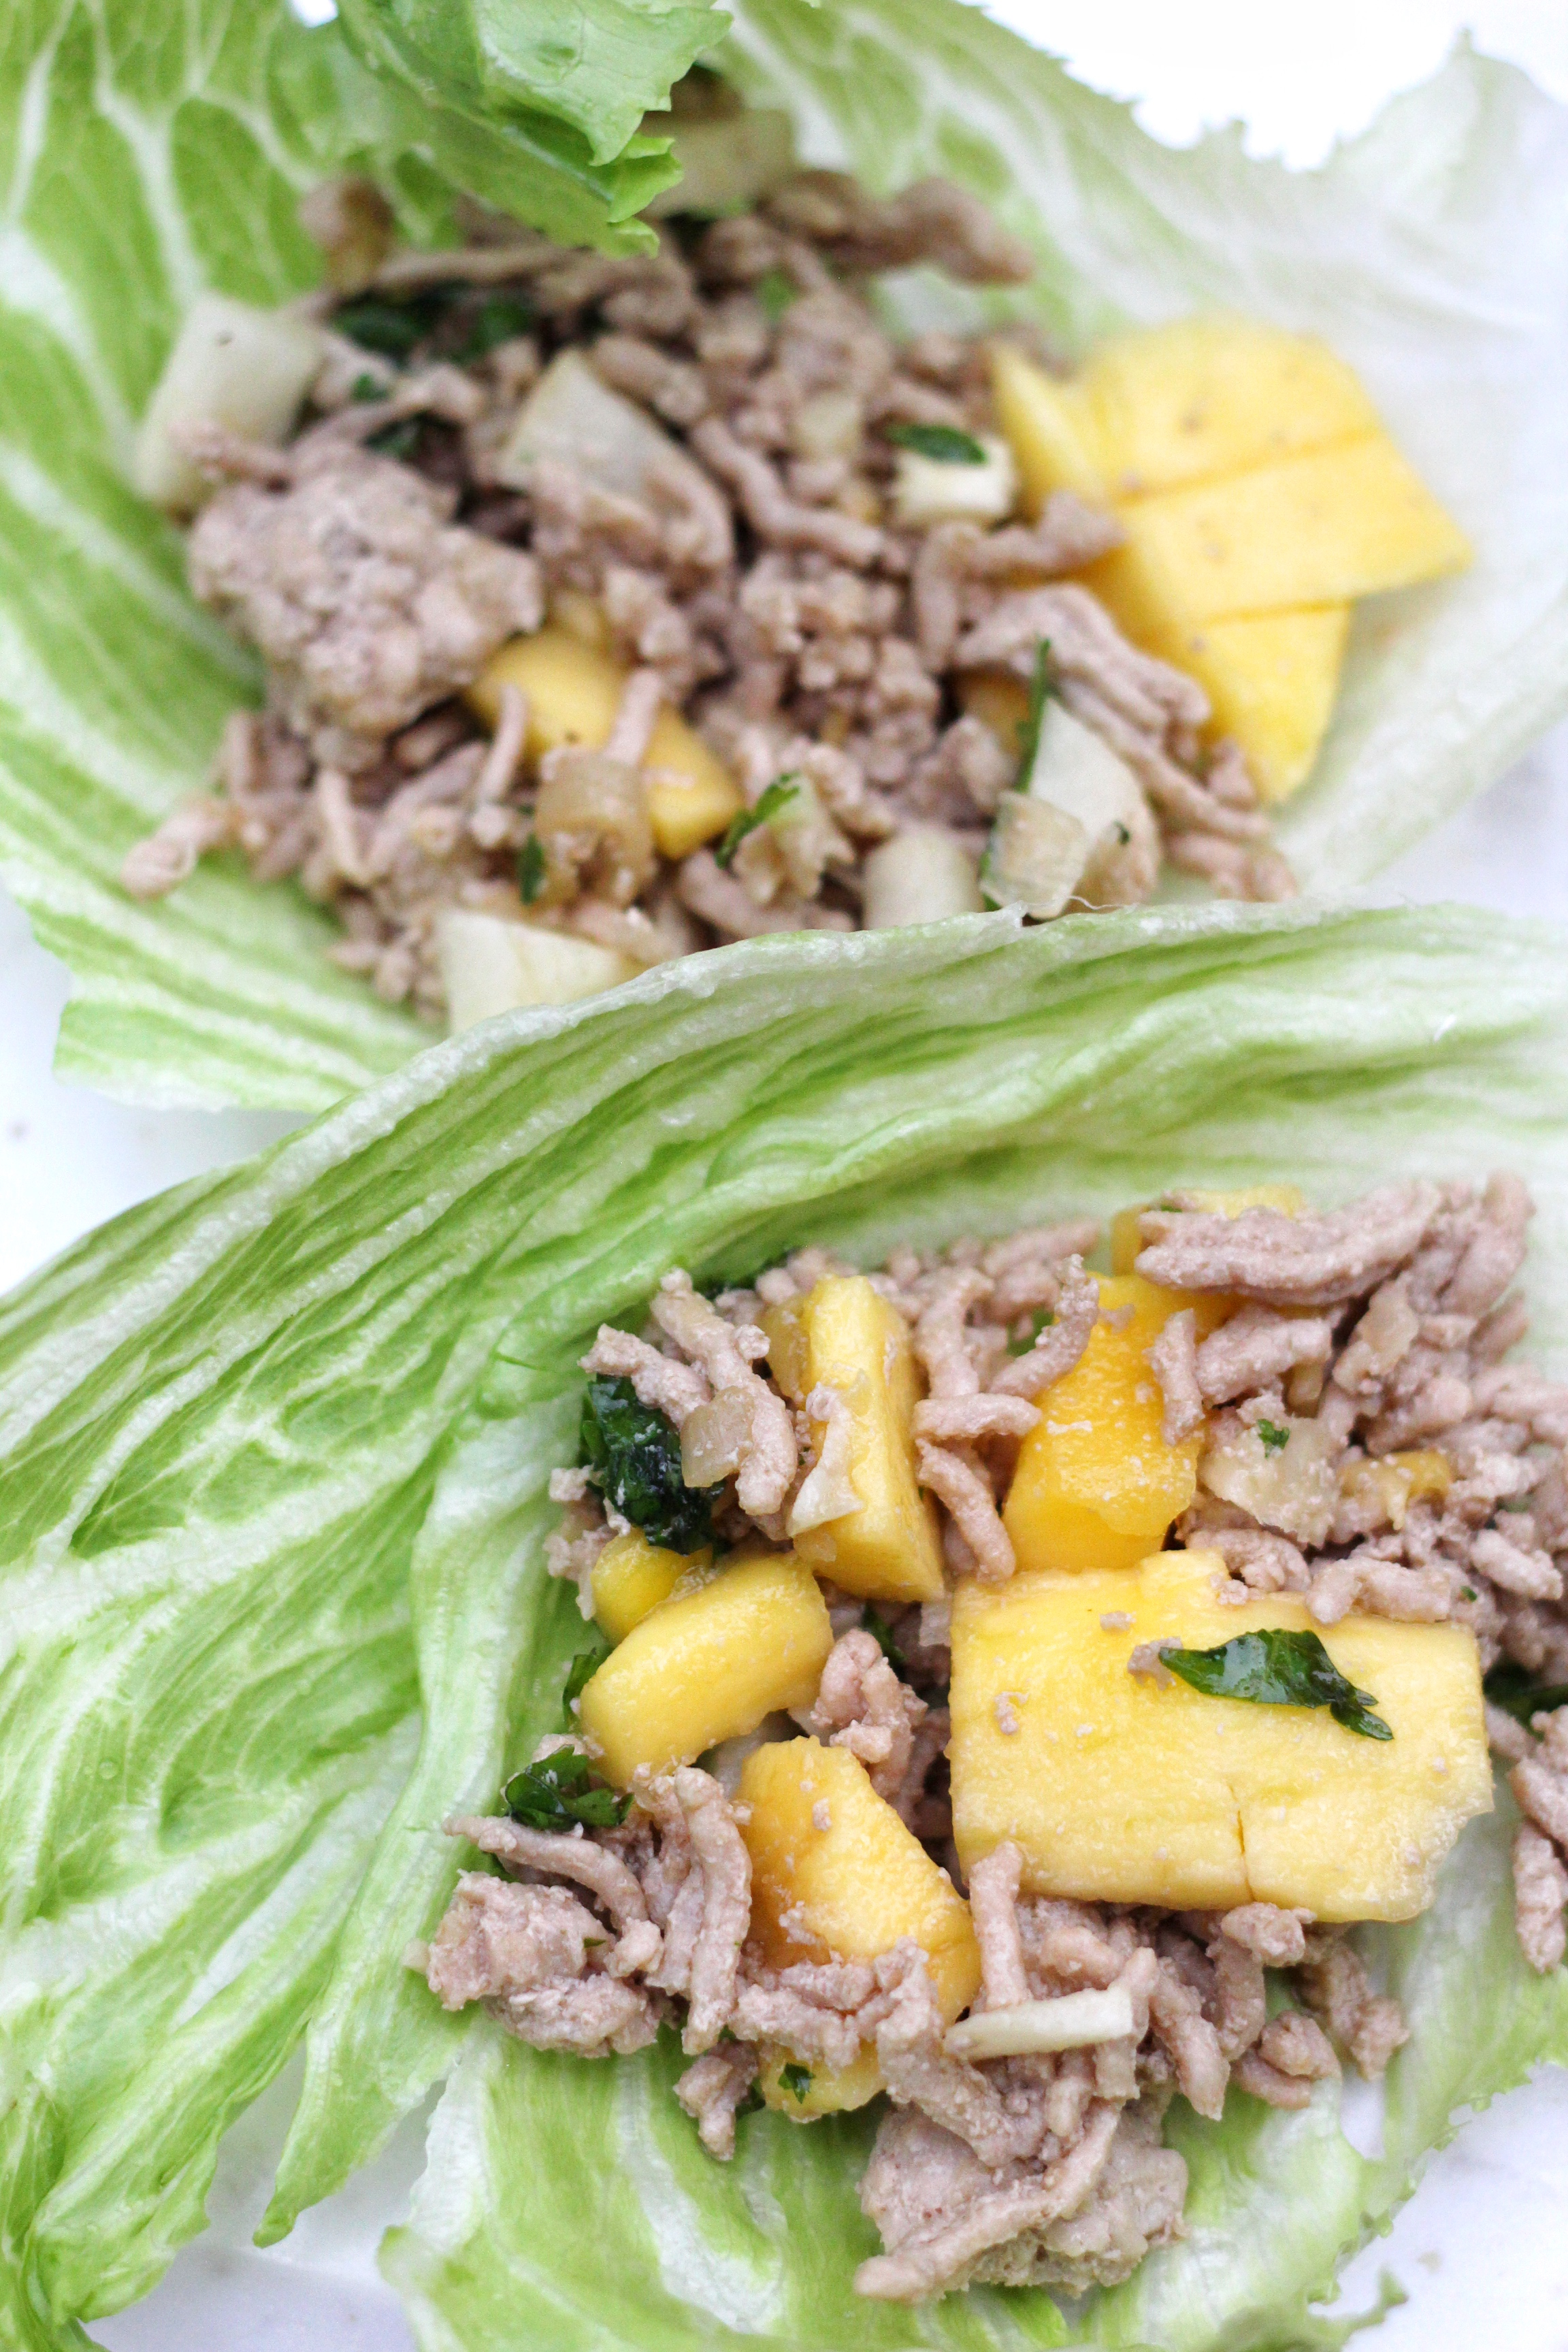 This healthy lettuce wrap recipe gets a Caribbean twist with mangoes and jicama. This dish is also low carb, paleo, and gluten free!